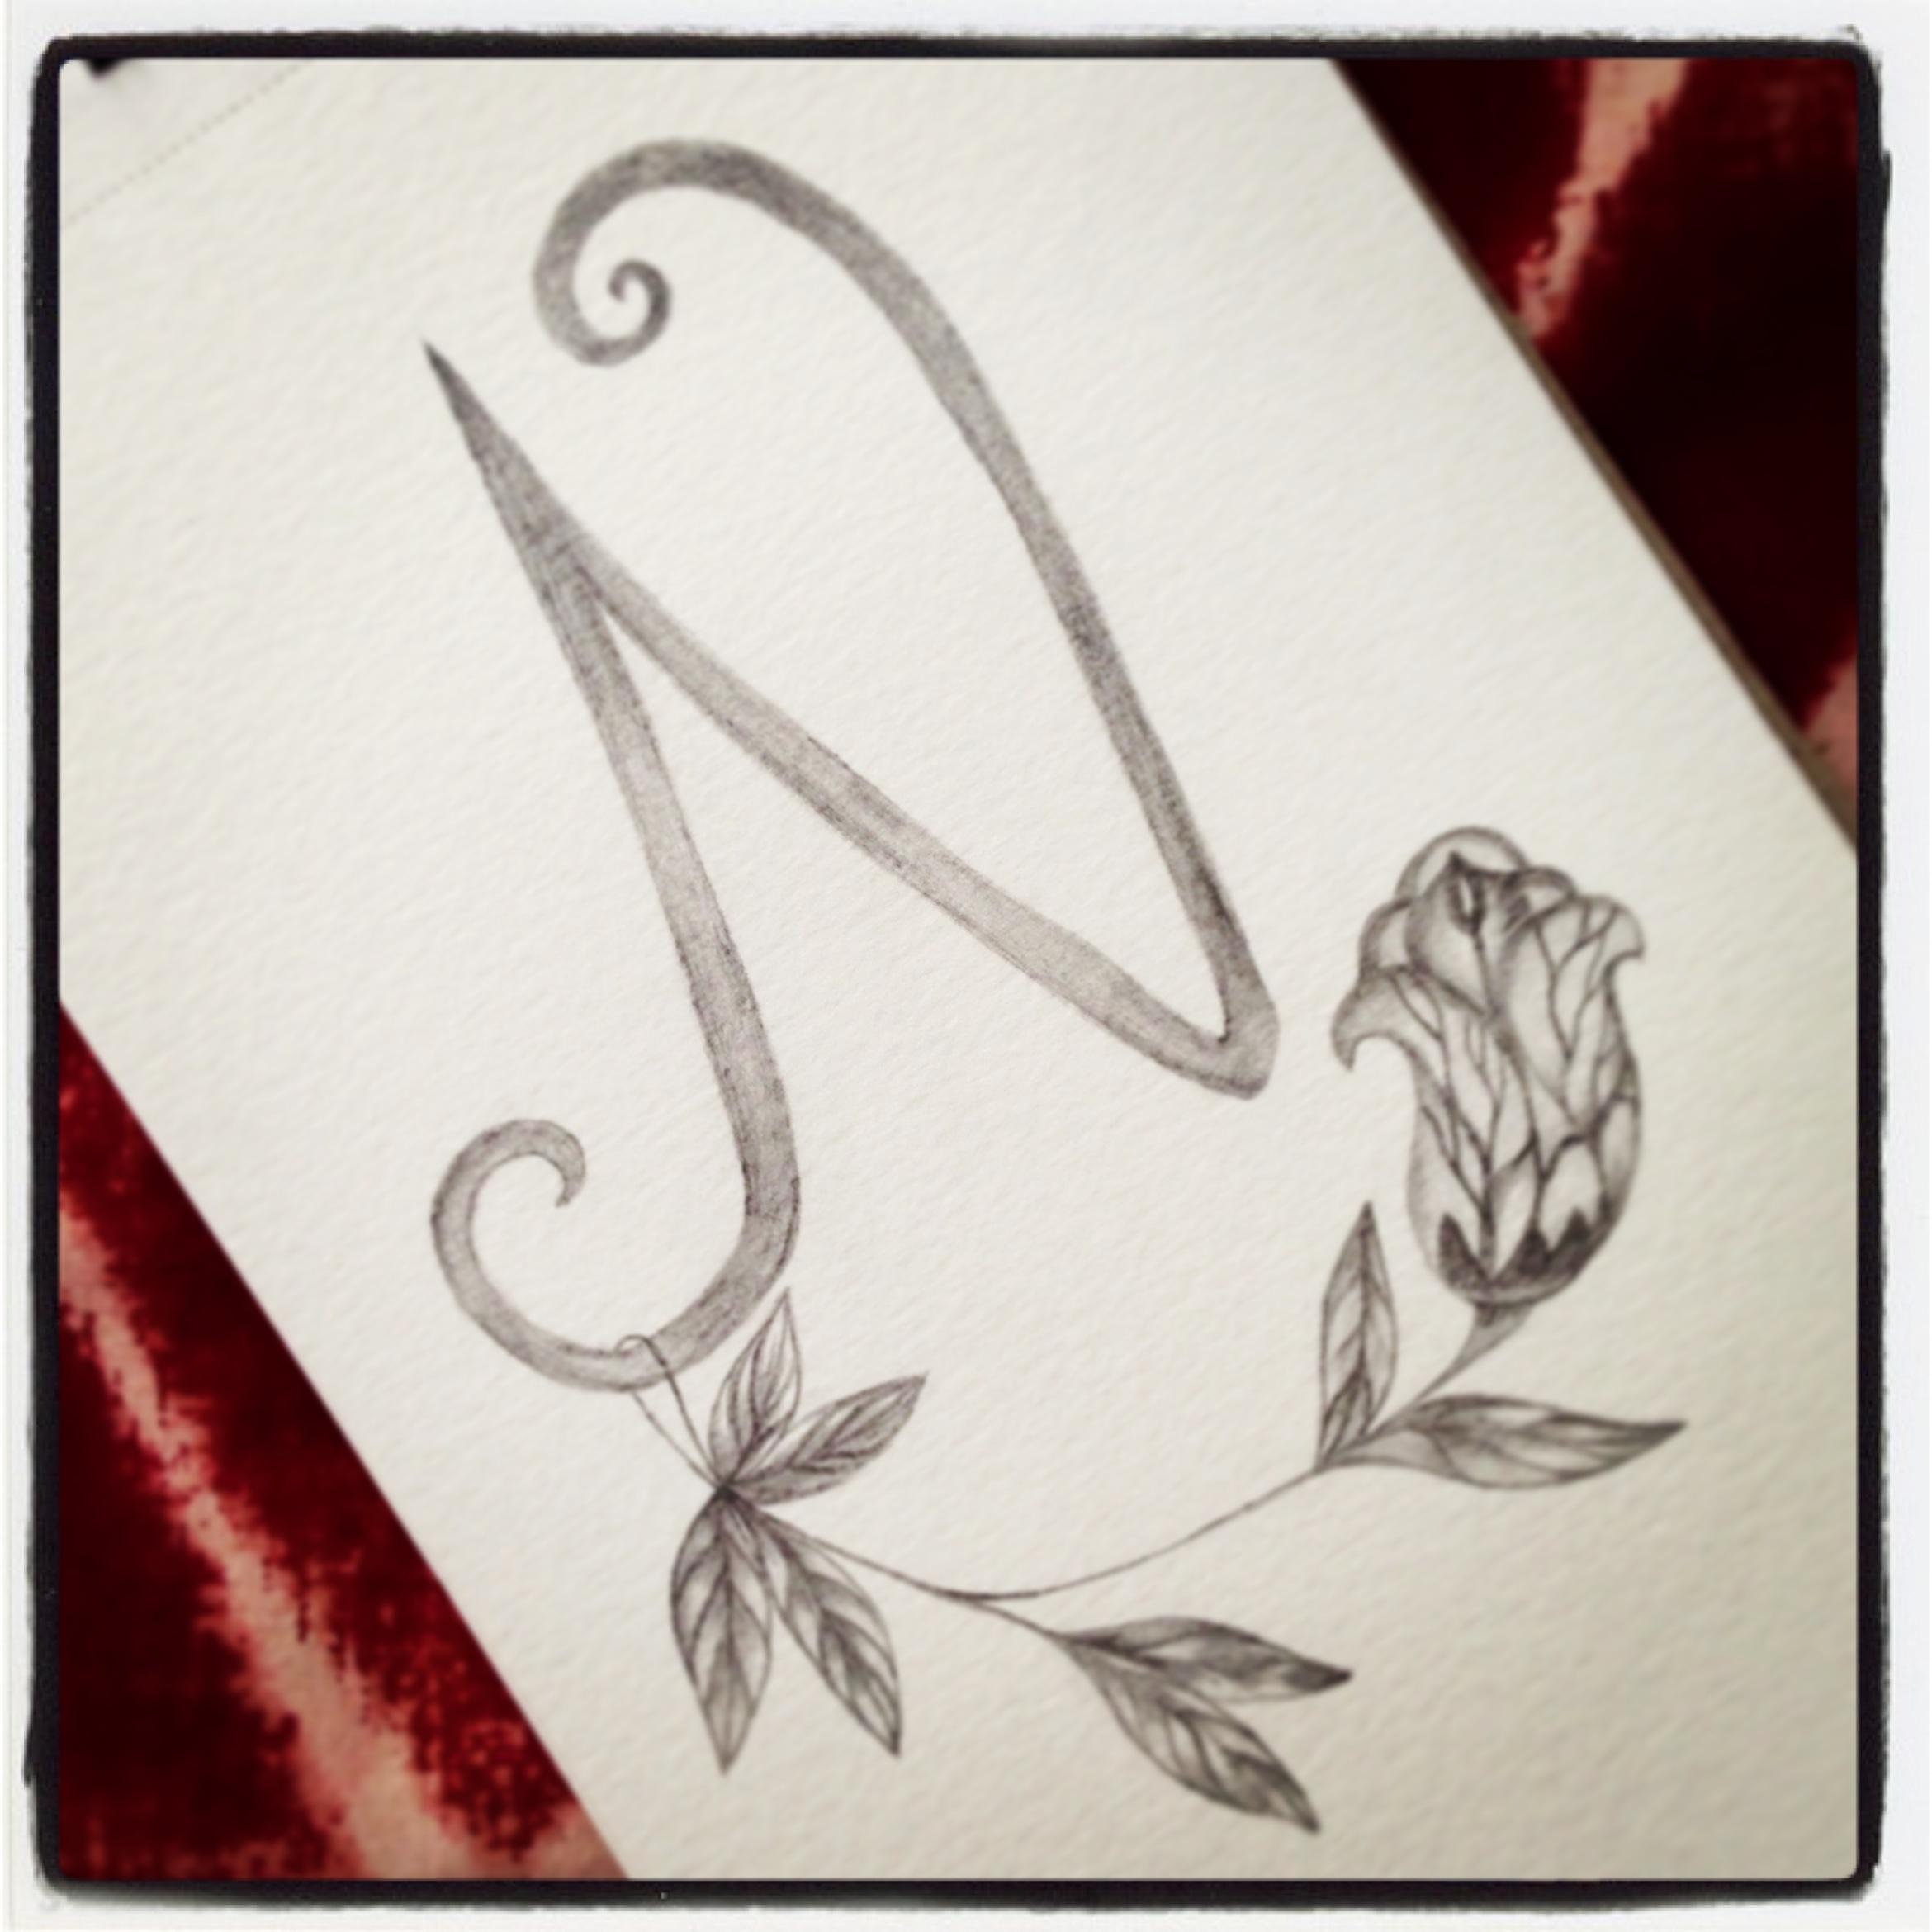 2340x2340 Letter N, The Initial Of My Name. One Of My Drawing In Pencil